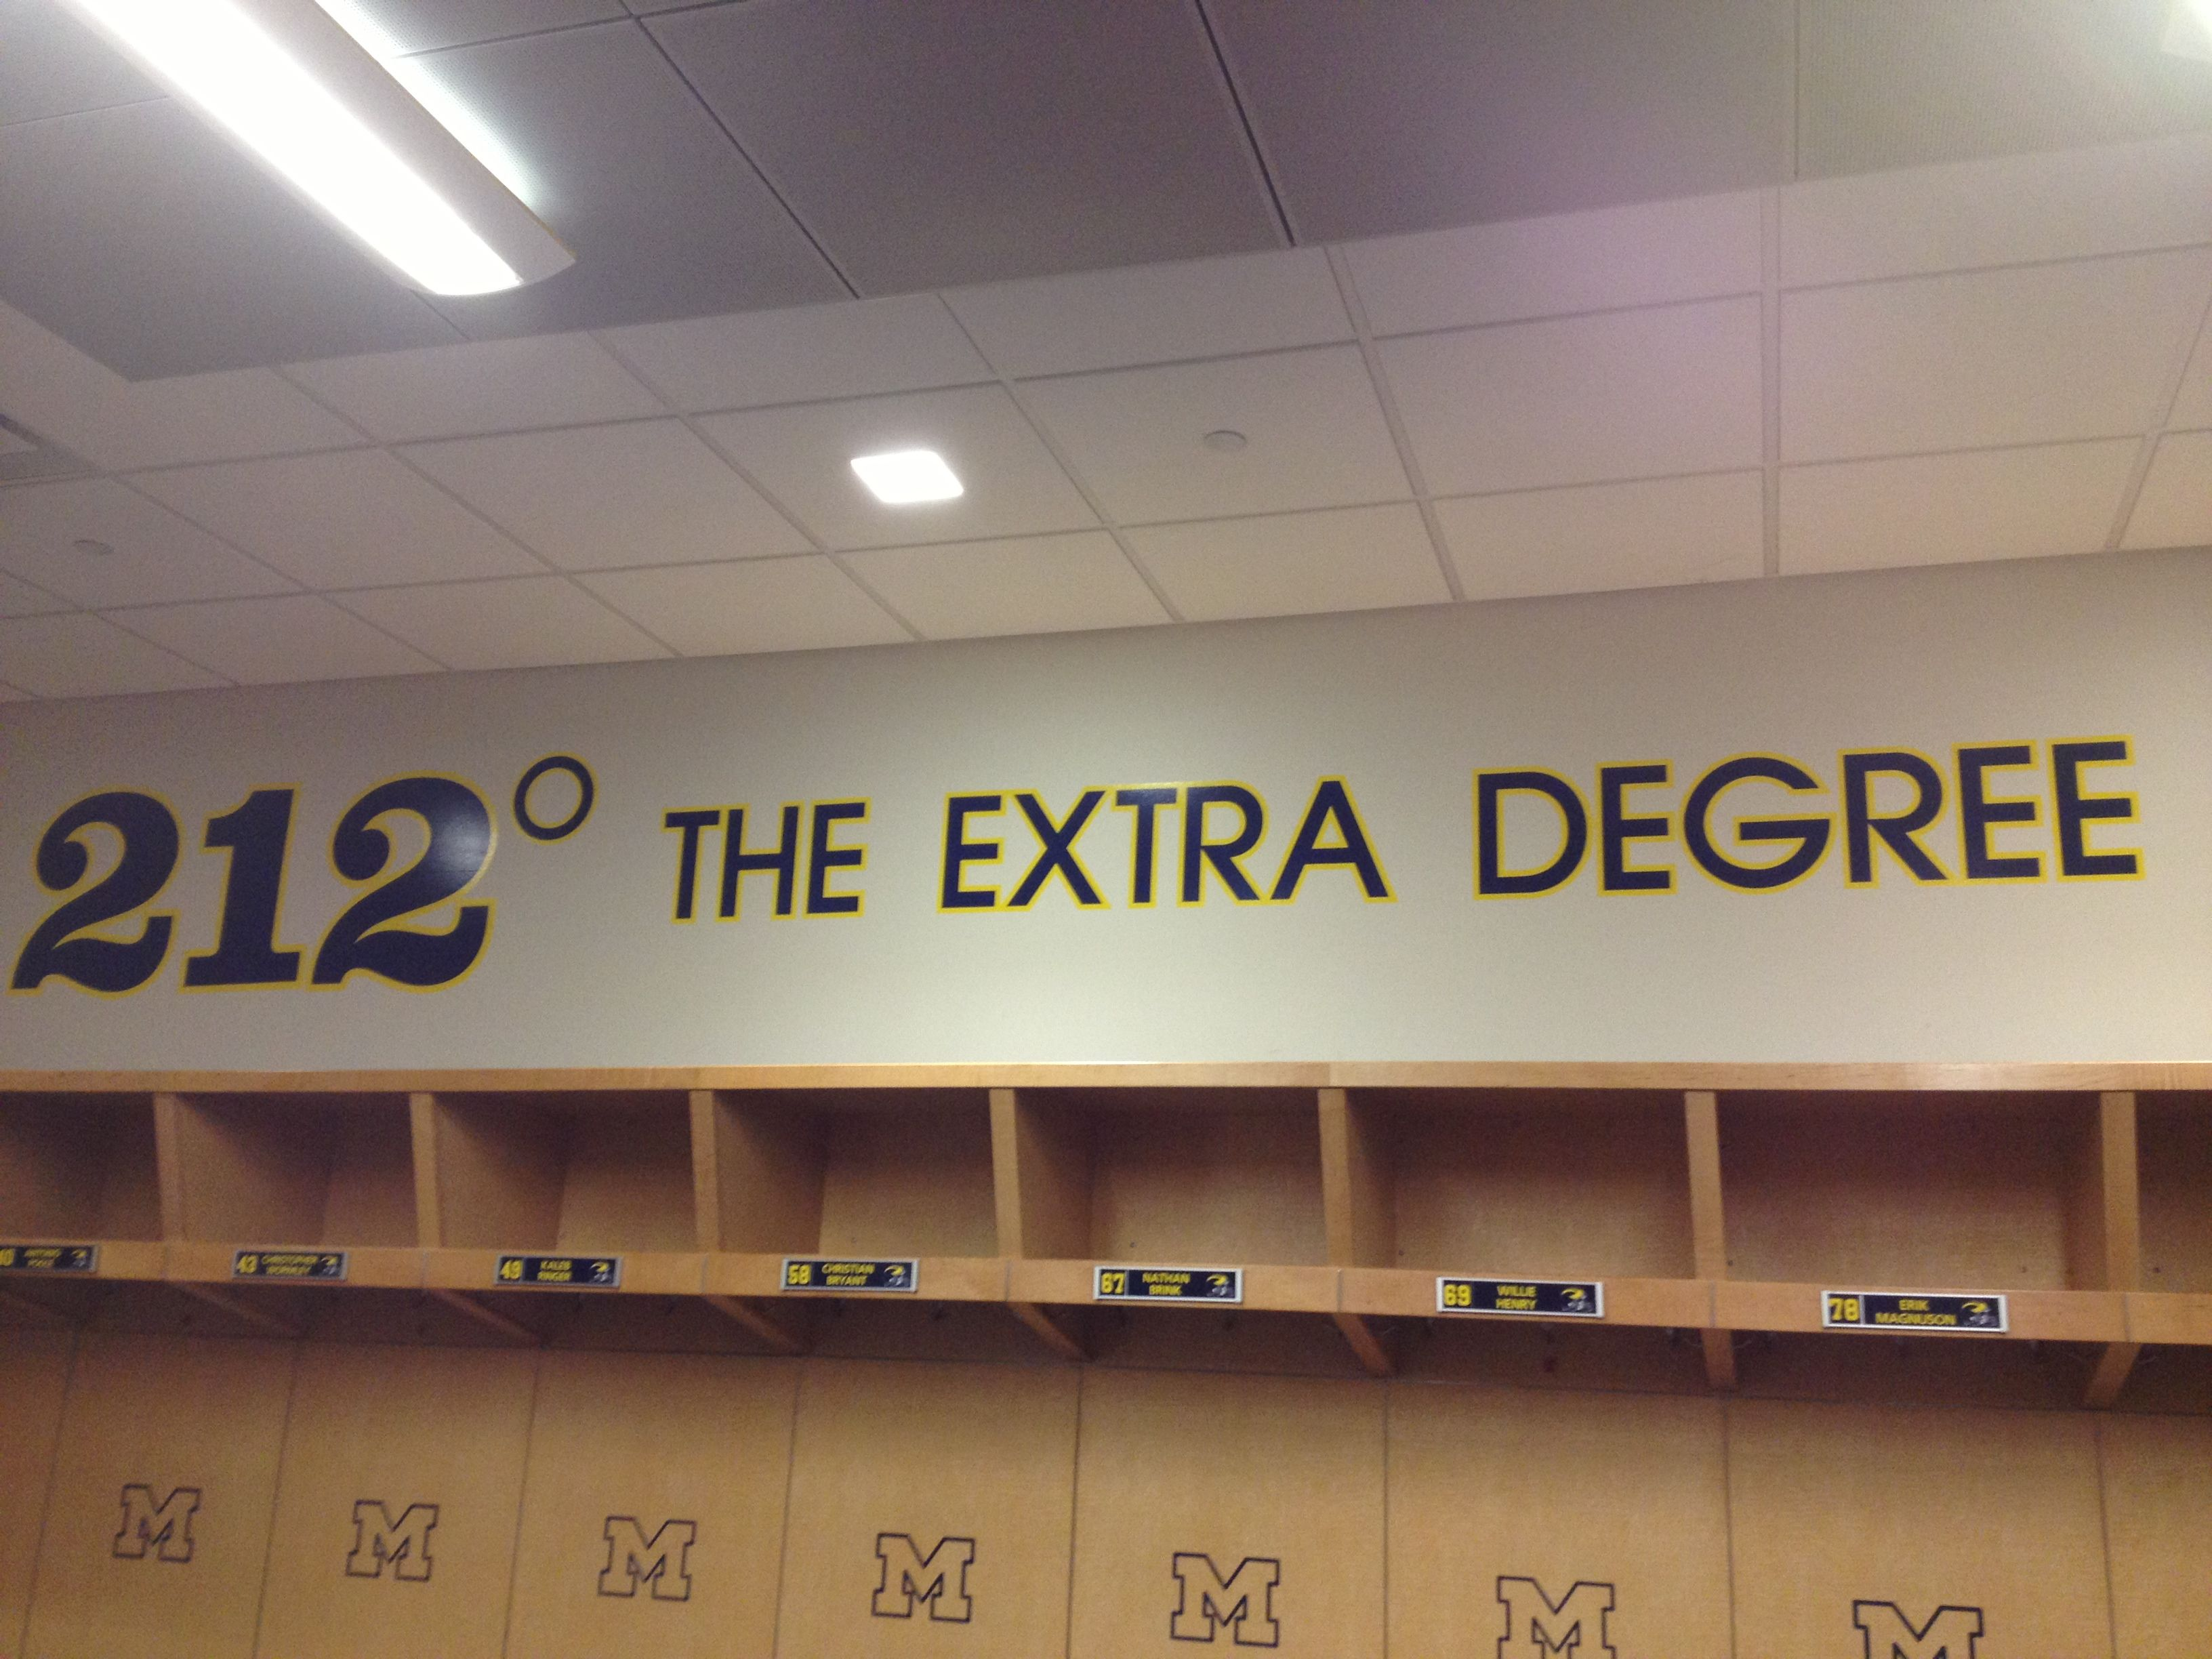 212 The Extra Degree One Of The Many Quotes Taken From Inside The